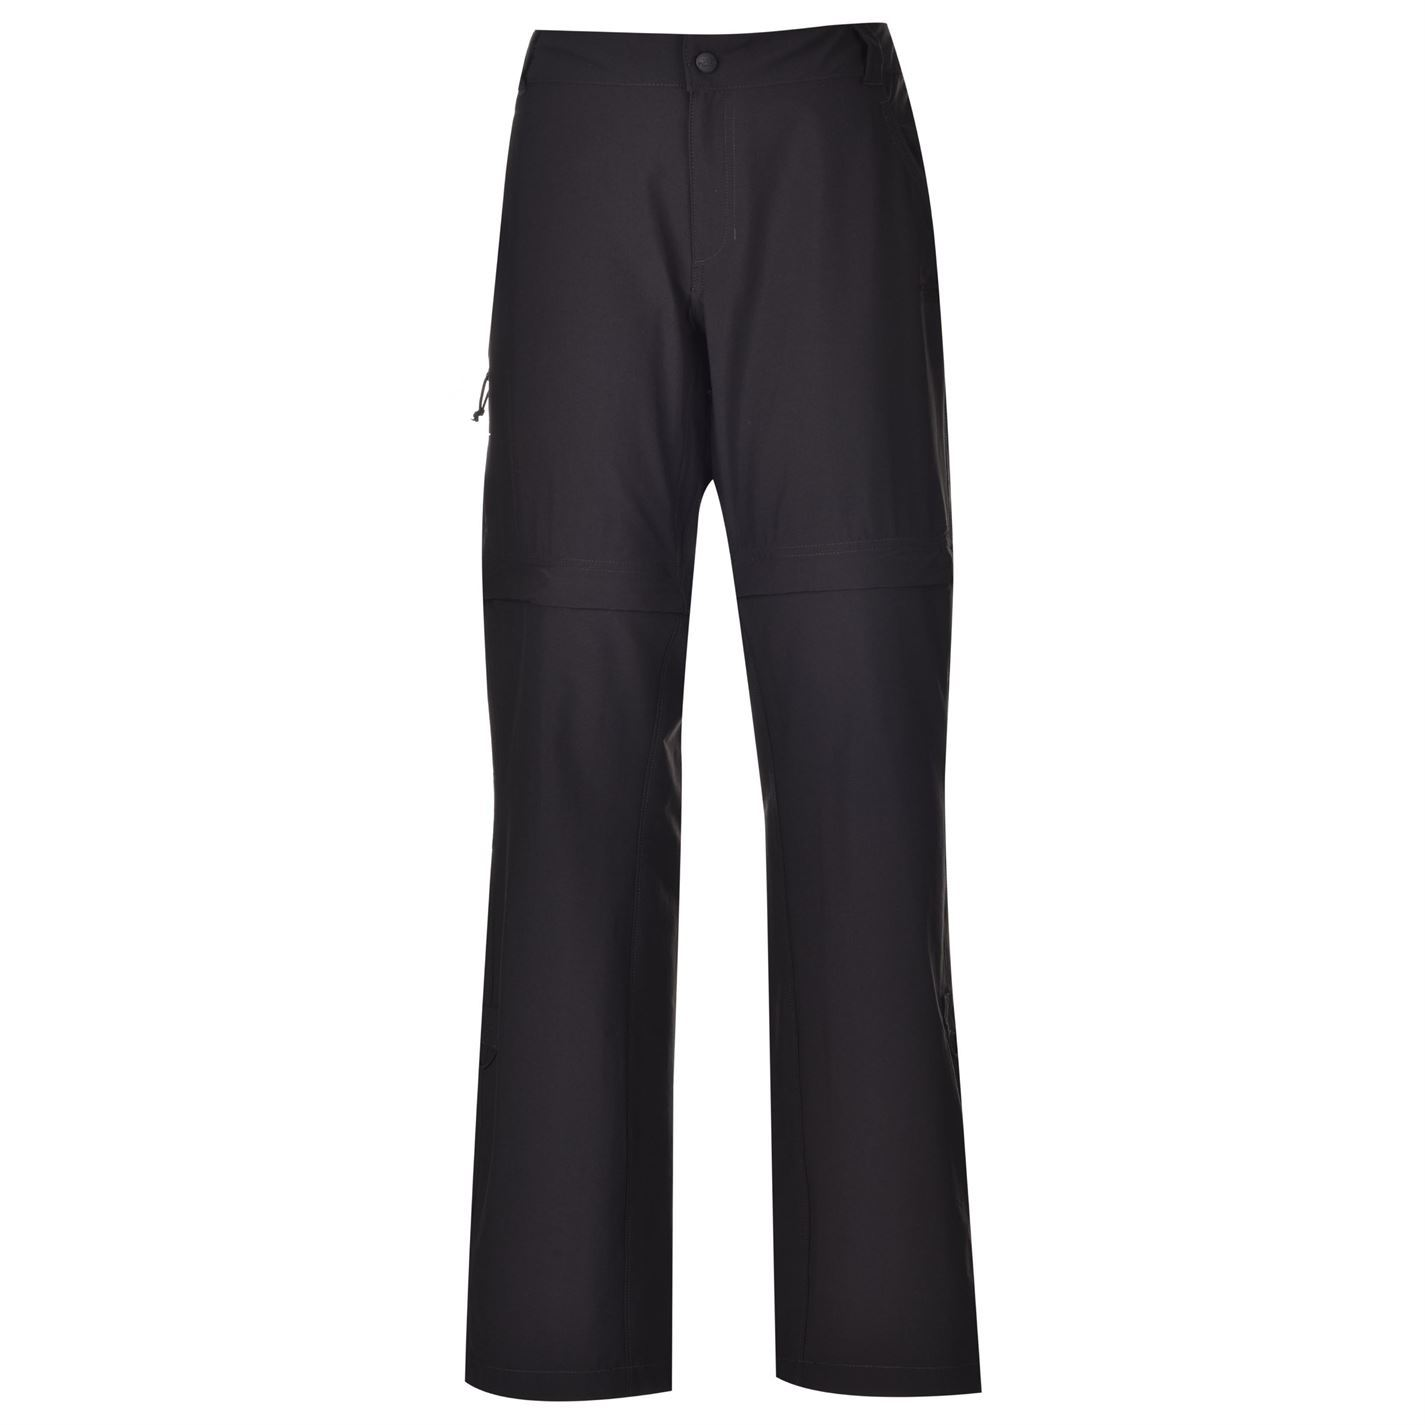 Excellent Either Way, These Hiking Trousers Will See You Right Through Those Cold Winter Days Buy The North Face Winter TChino Trousers Here Craghoppers Make Excellent Hiking Gear For Both Men And Women The Womens Clara Pants Have